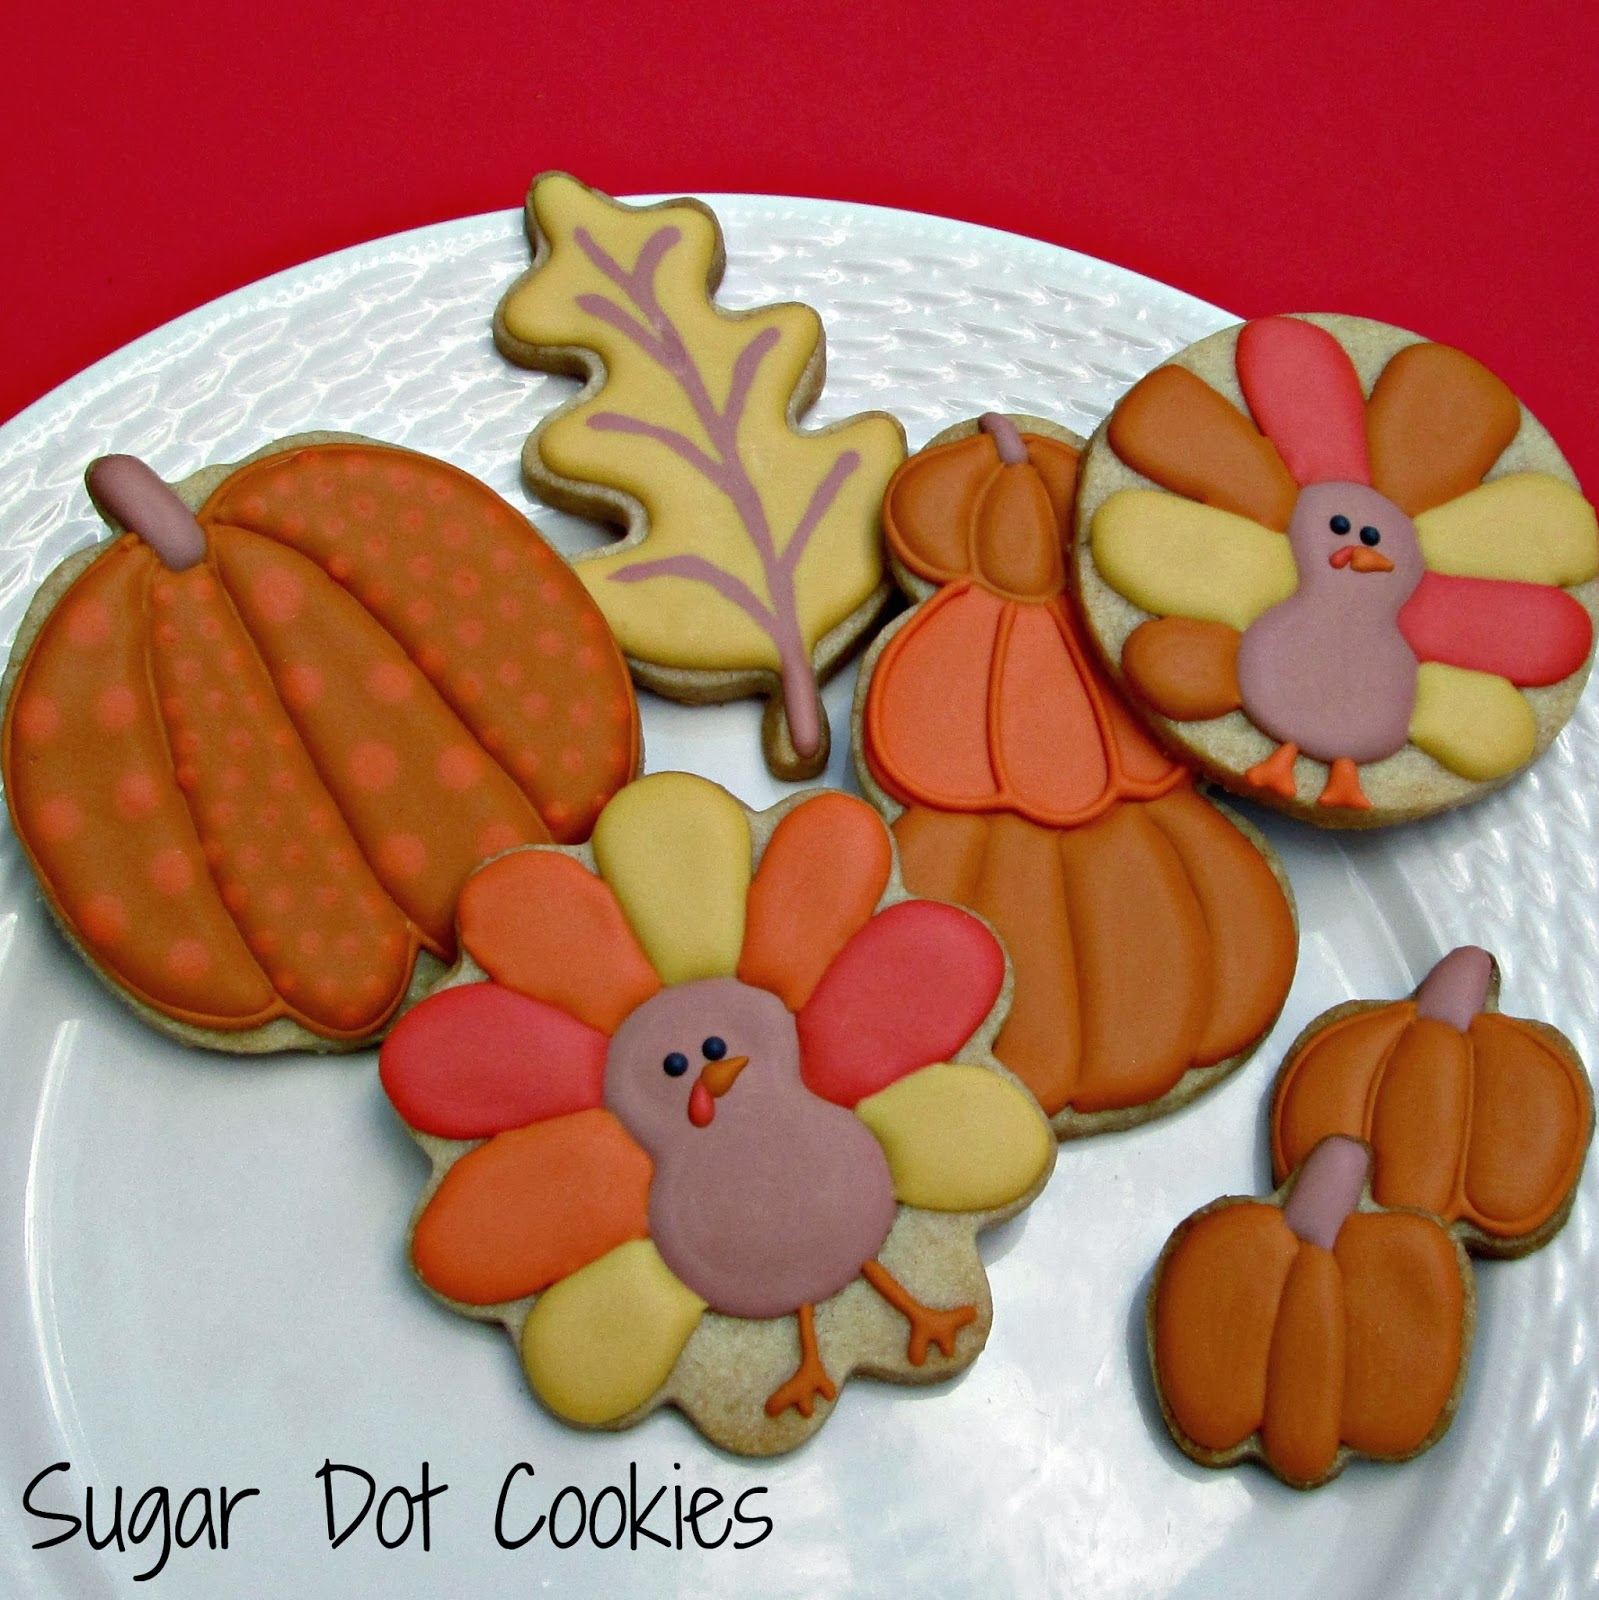 Candy Kitchen Frederick Md: Sugar Fairy Sweet: Fall Cookie Decorating Class